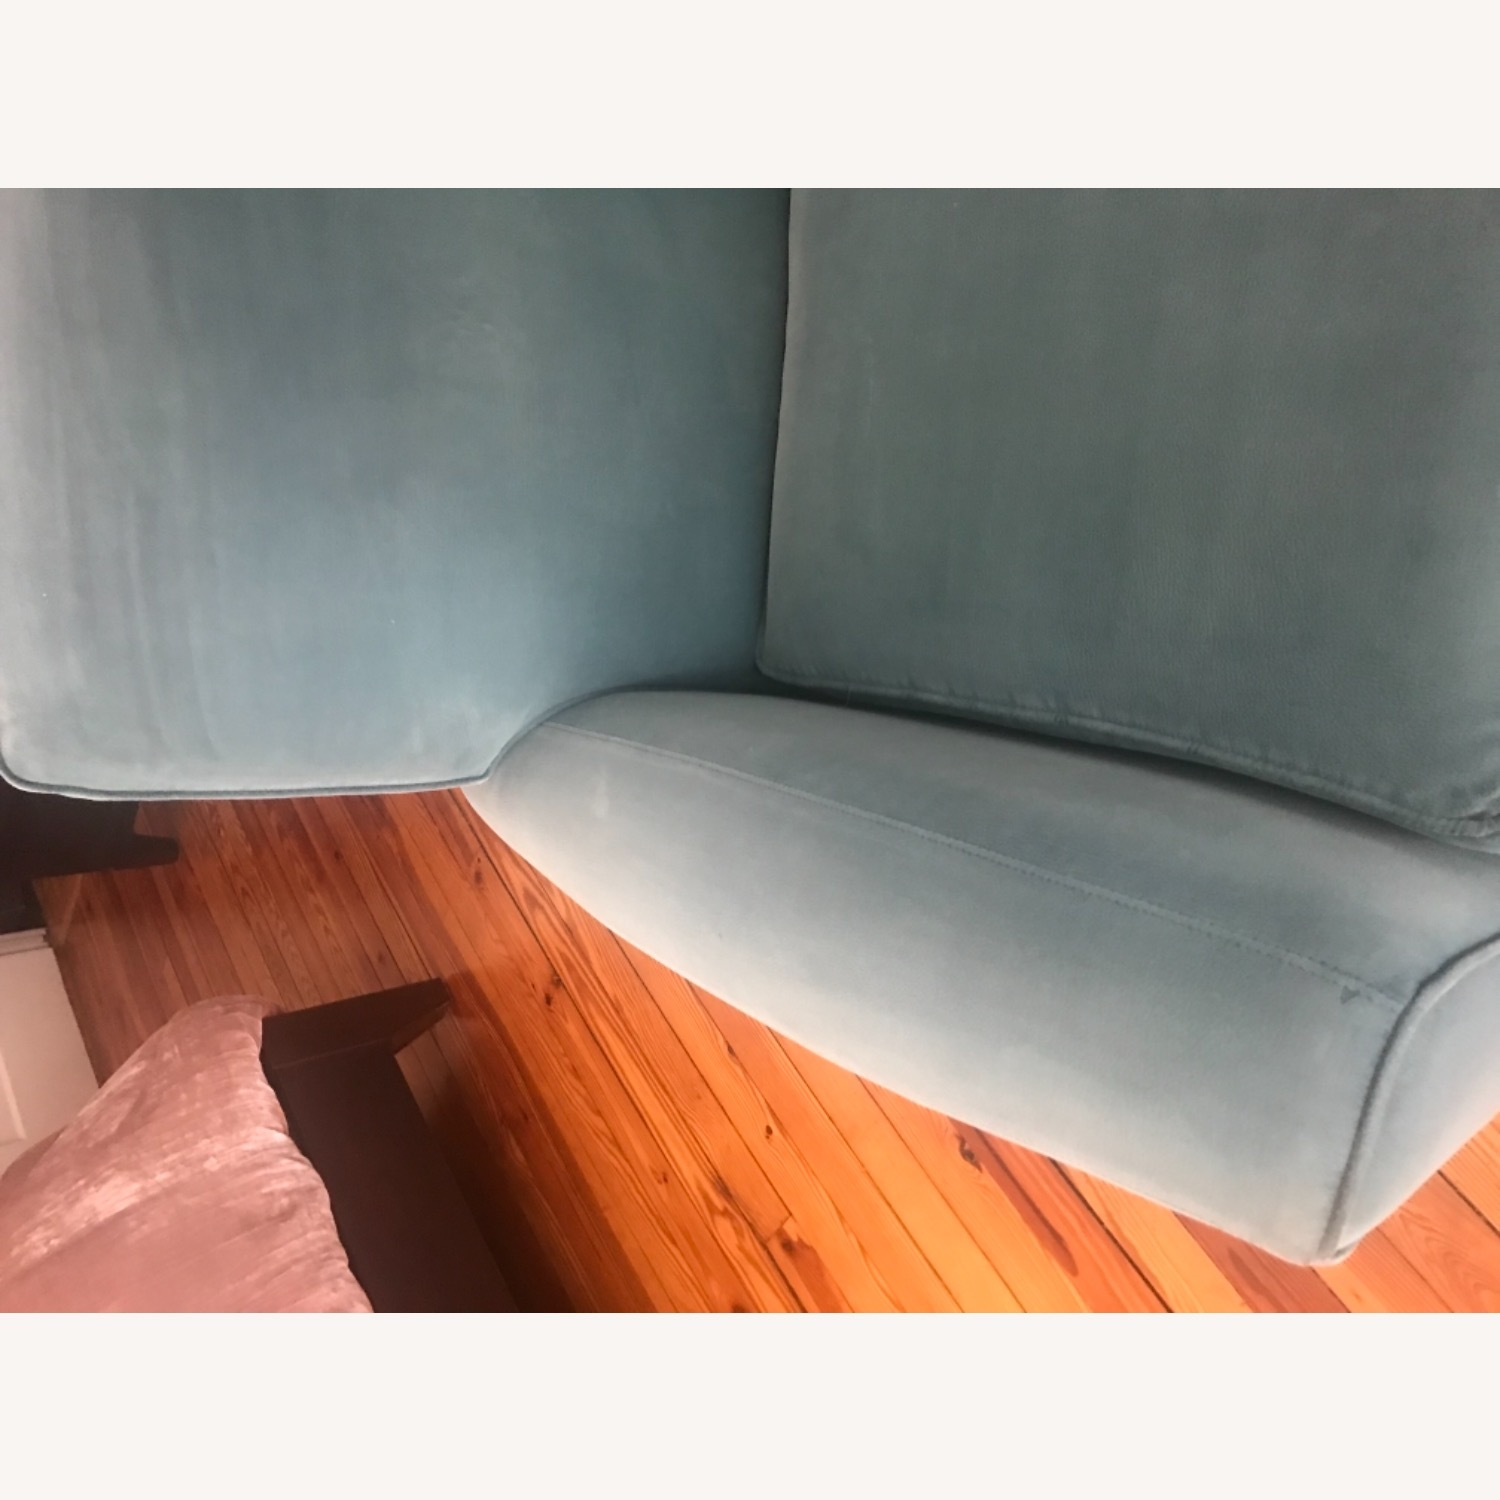 Ethan Allen Soho Chairs (2) - image-8